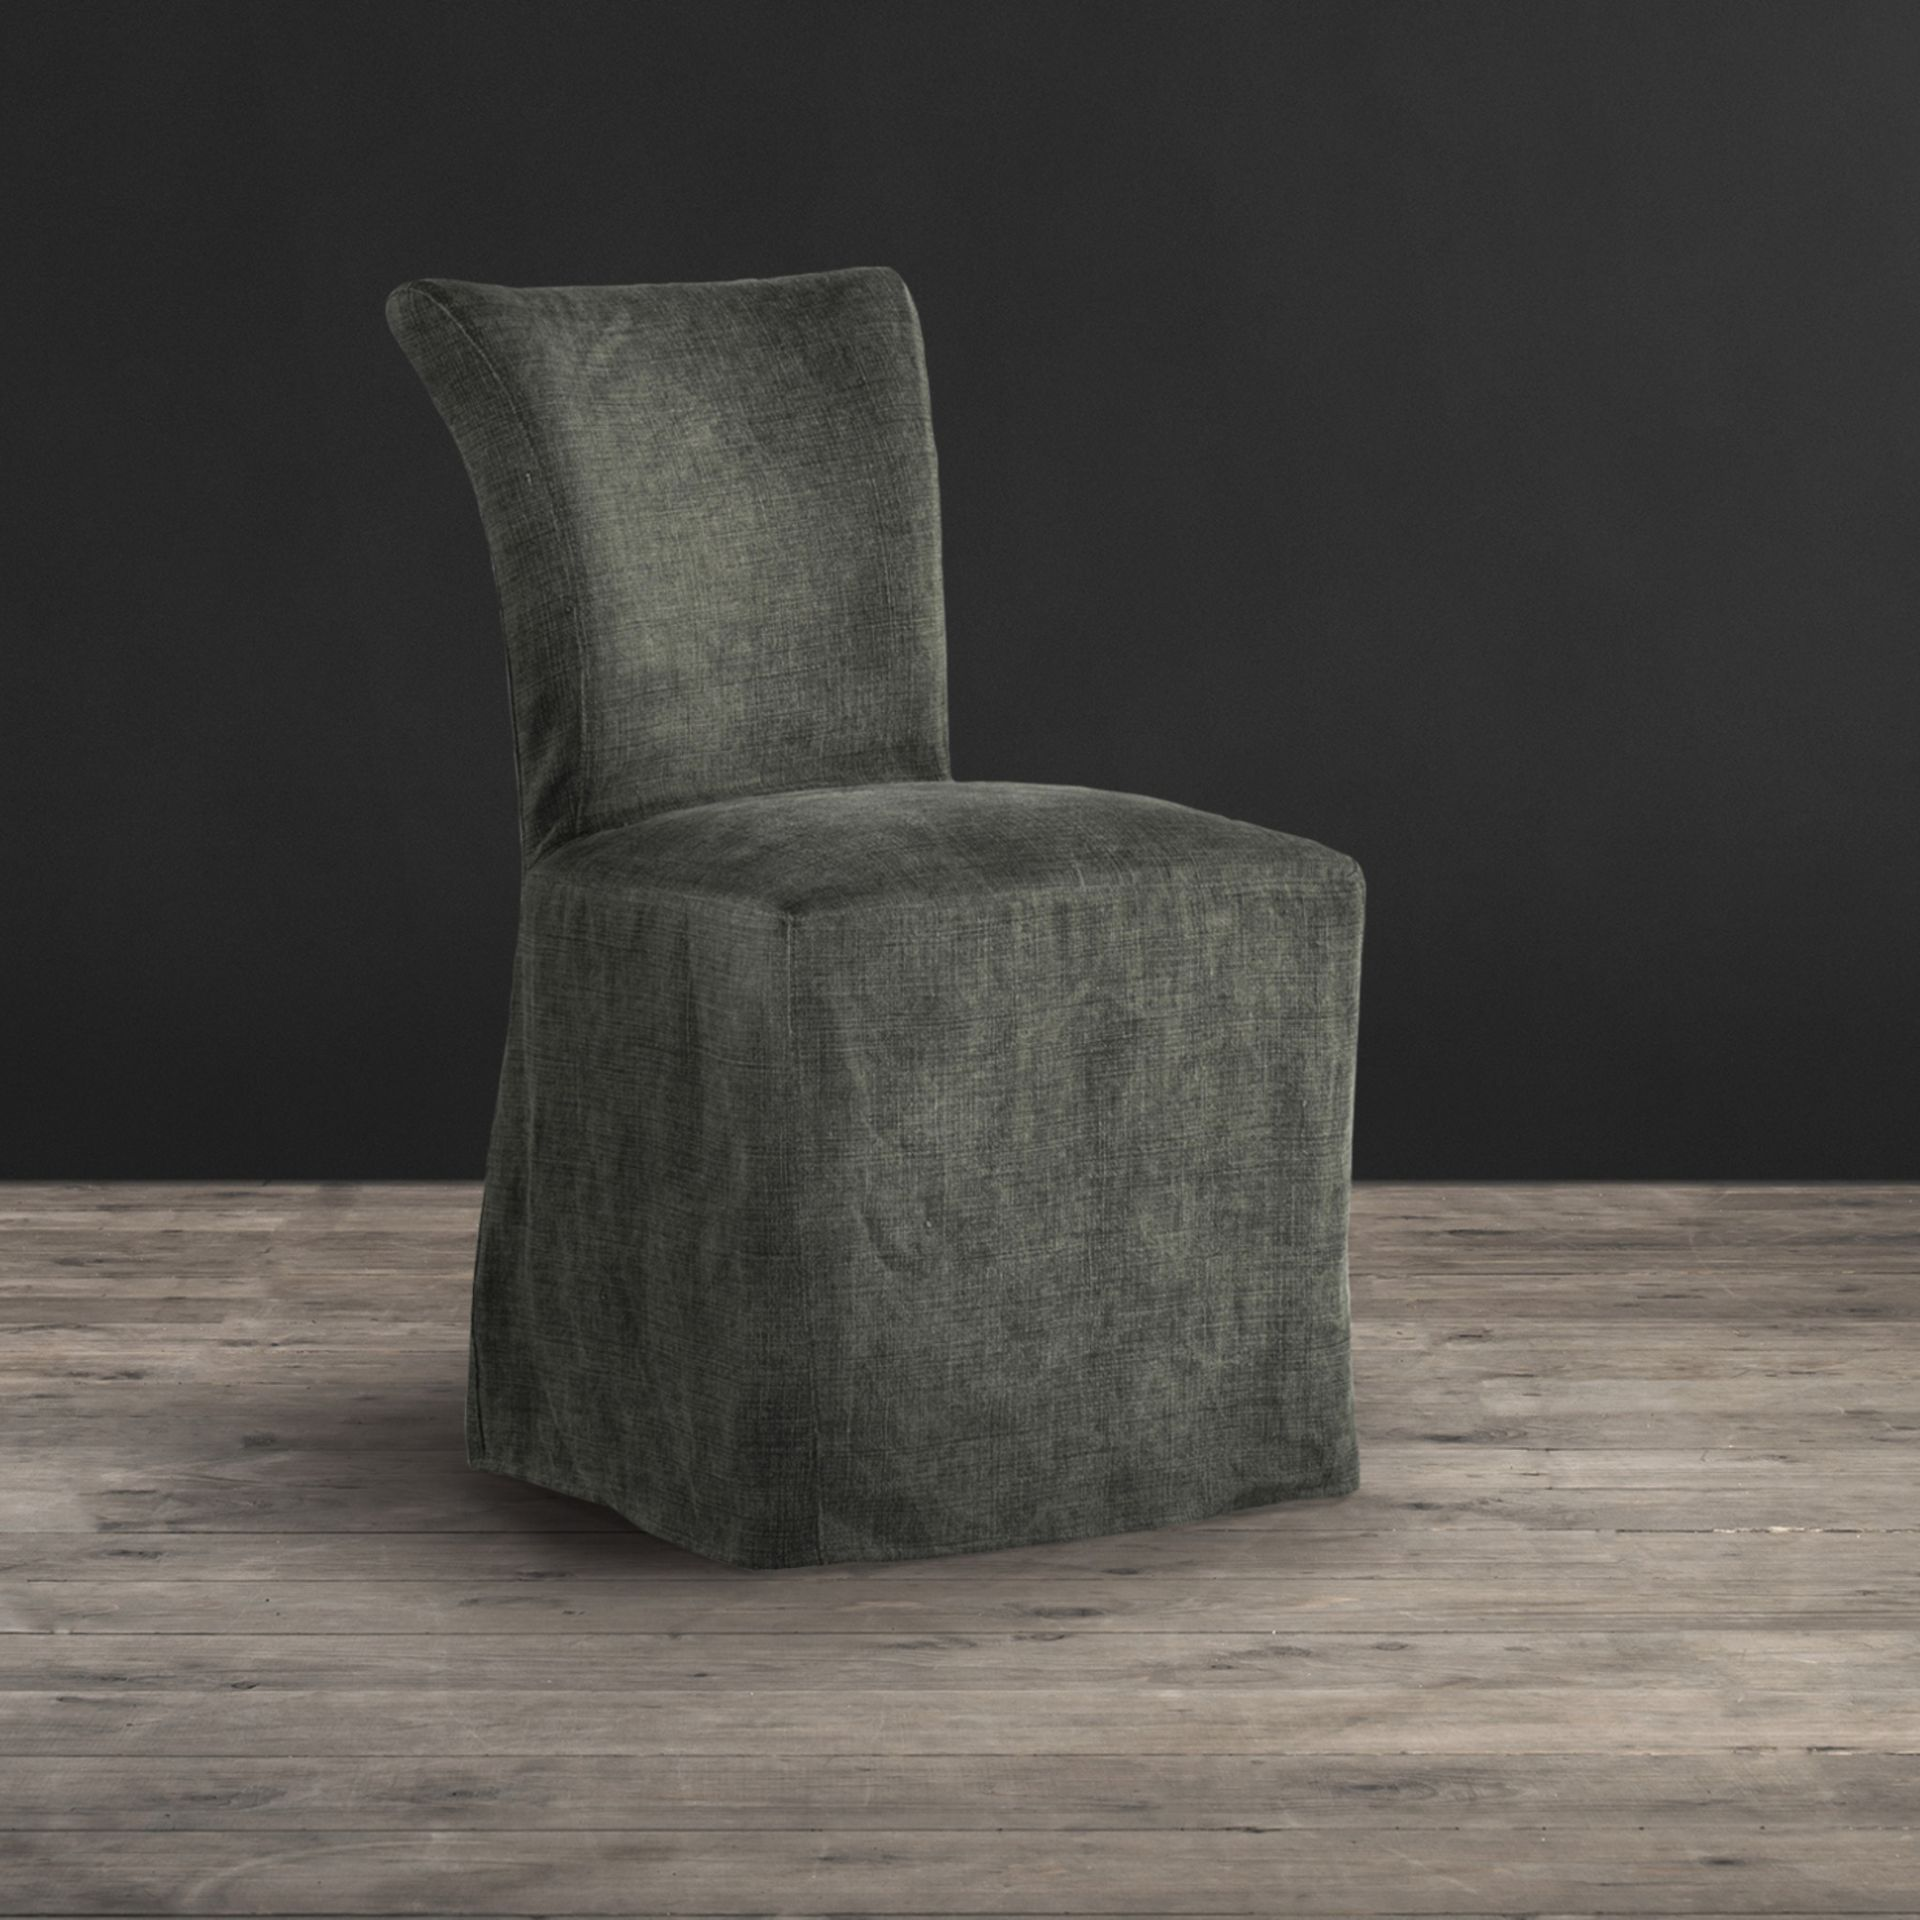 Lot 2 - Mimi Chair Scuff Linen Bone With Loose Cover We've Given Our Best-Selling Mimi Dining Chair A